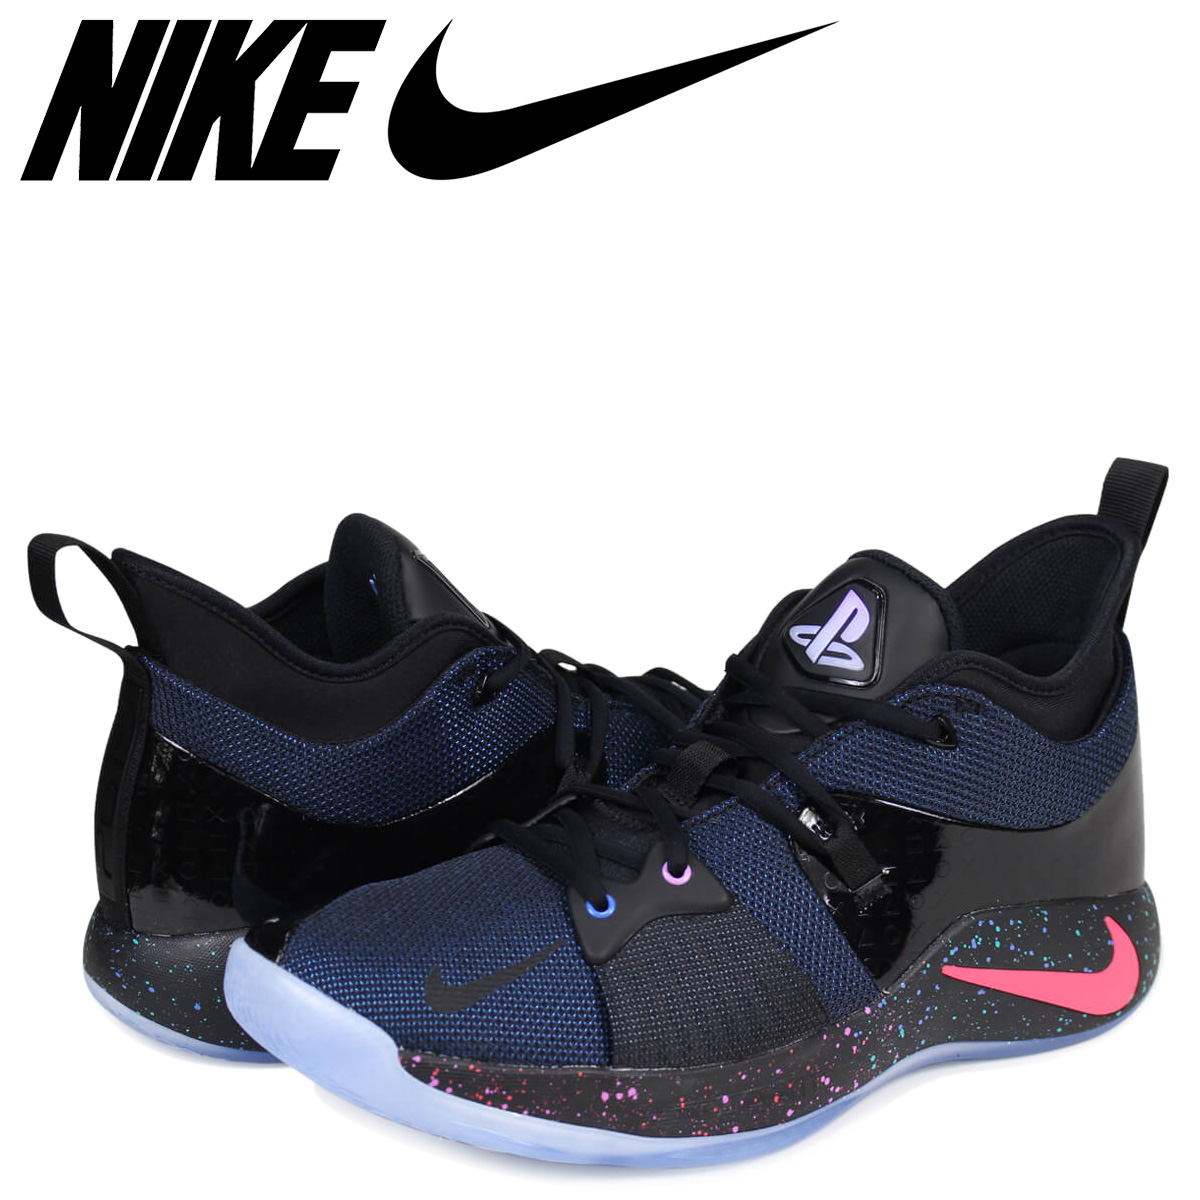 2bb000b07af ALLSPORTS  NIKE PG 2 EP PLAYSTATION Nike PG2 sneakers men black ...